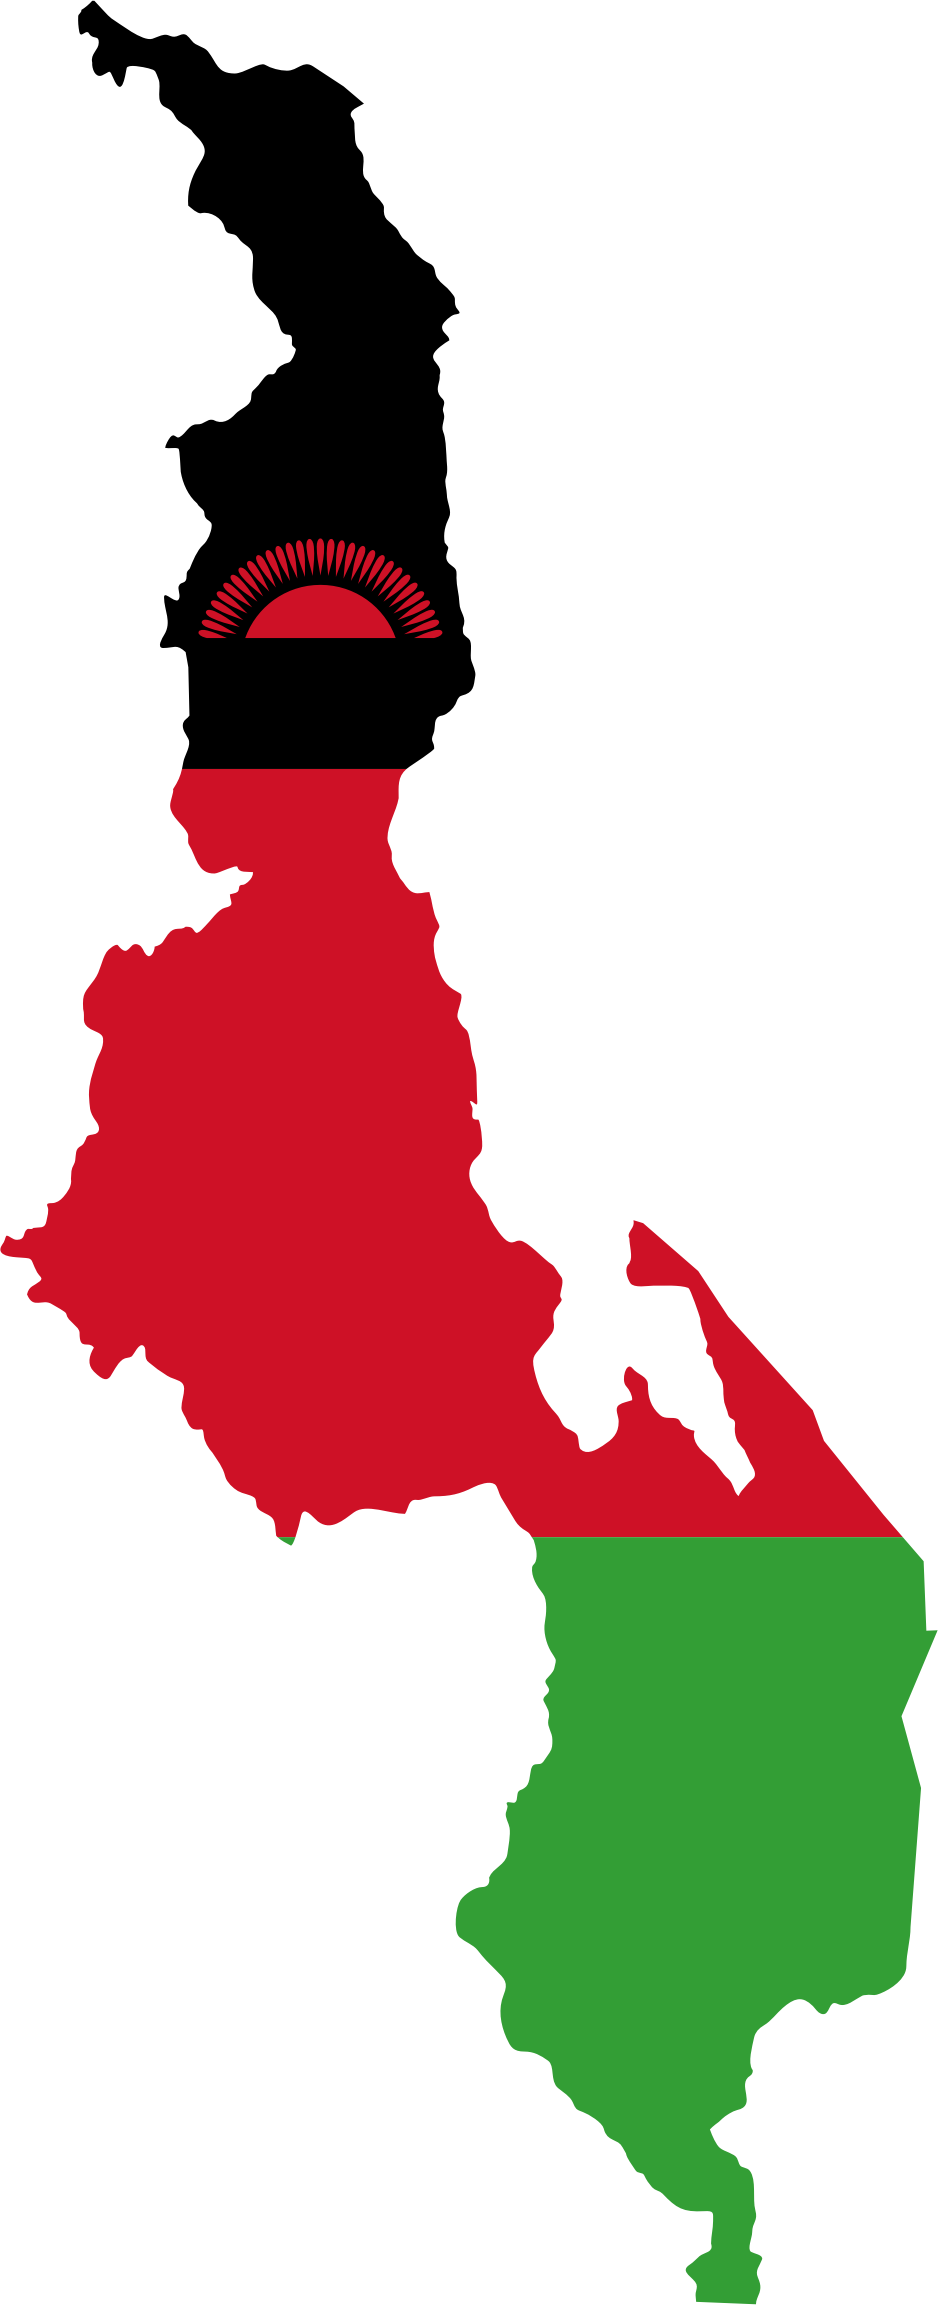 Malawi Flag Map by GDJ